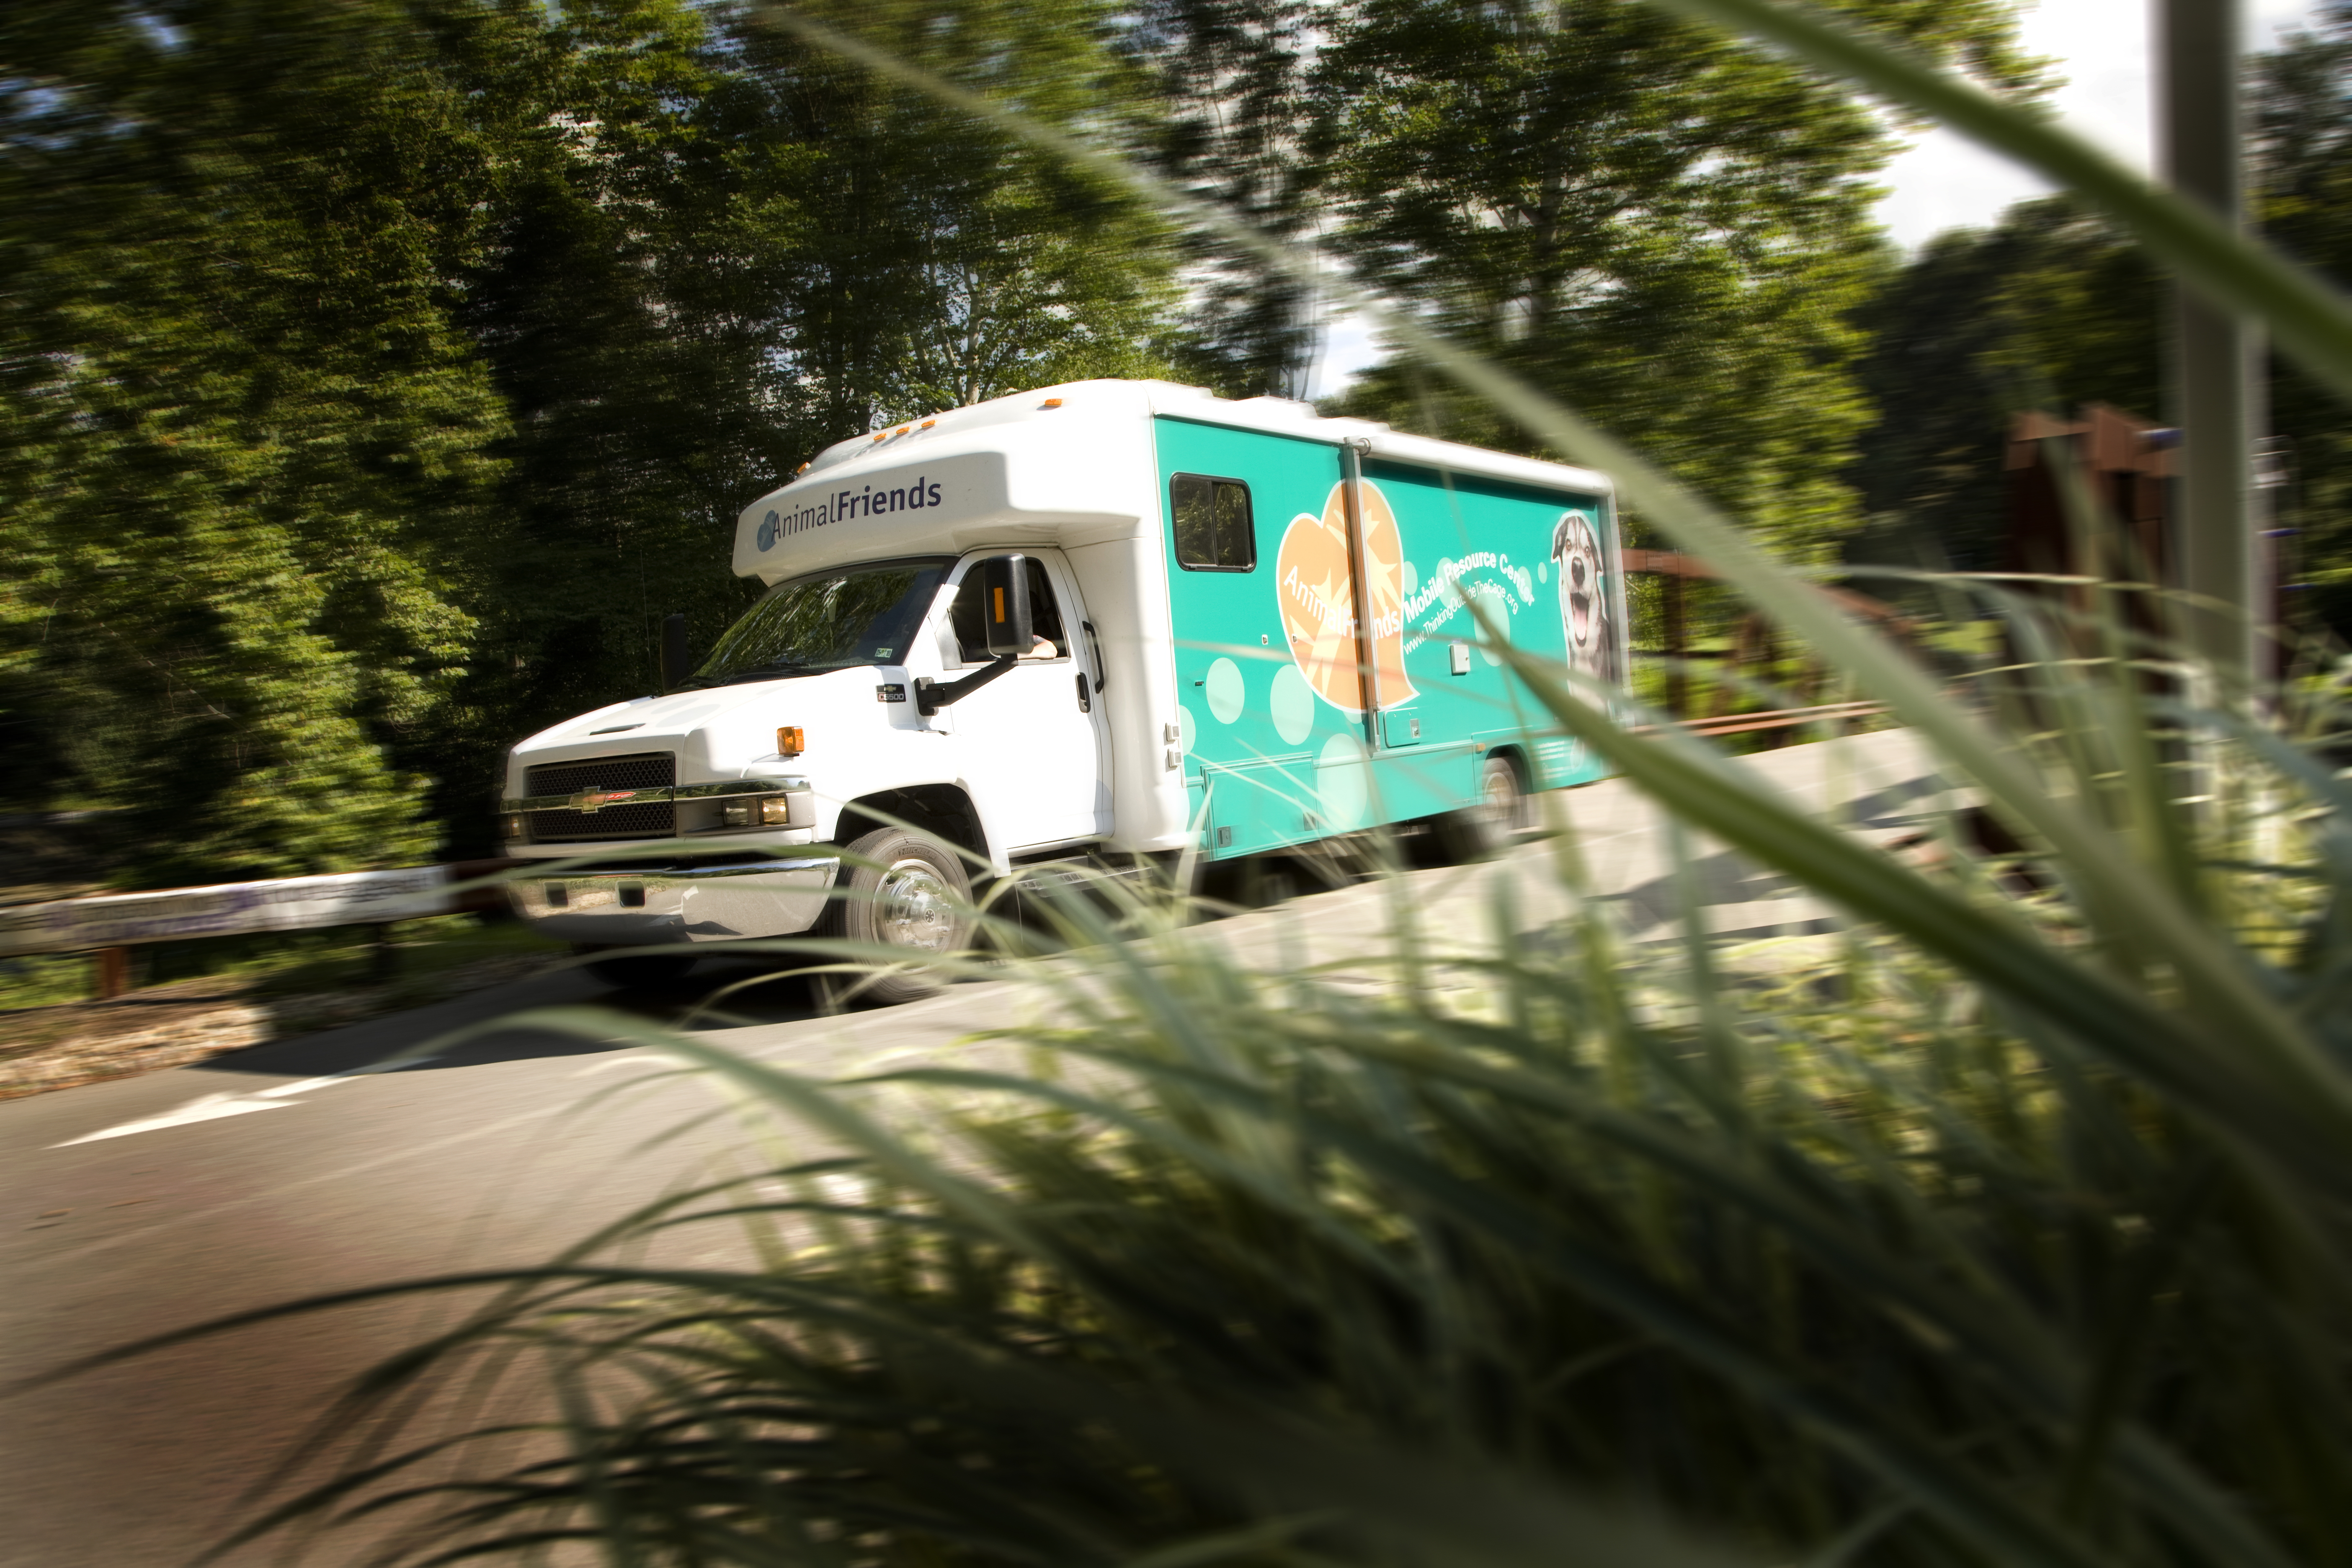 Mobile Resource Center - Animal Friends, Inc